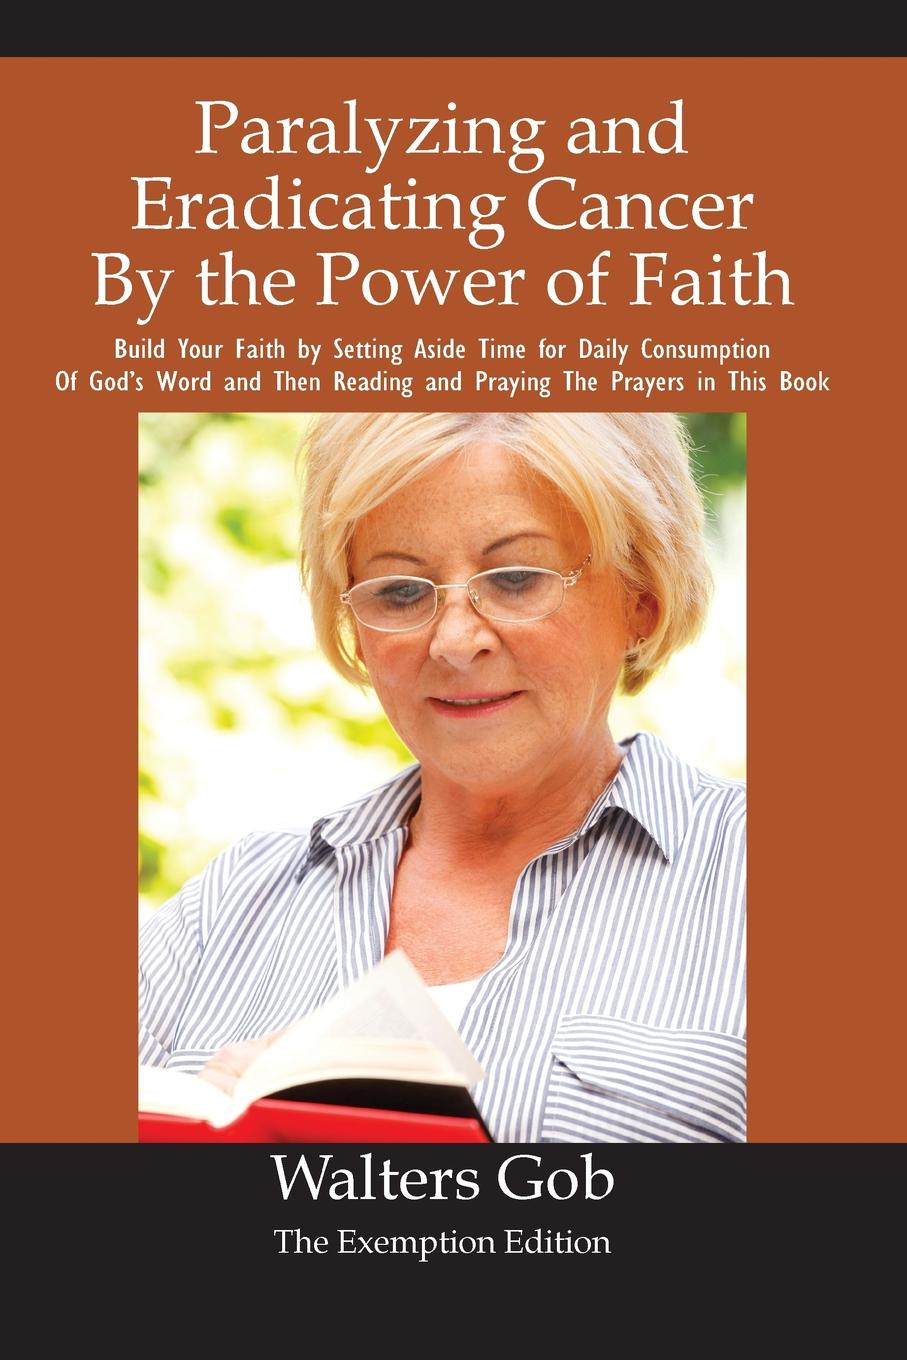 Walters Gob Paralyzing And Eradicating Cancer By The Power Of Faith. michael hari one faith